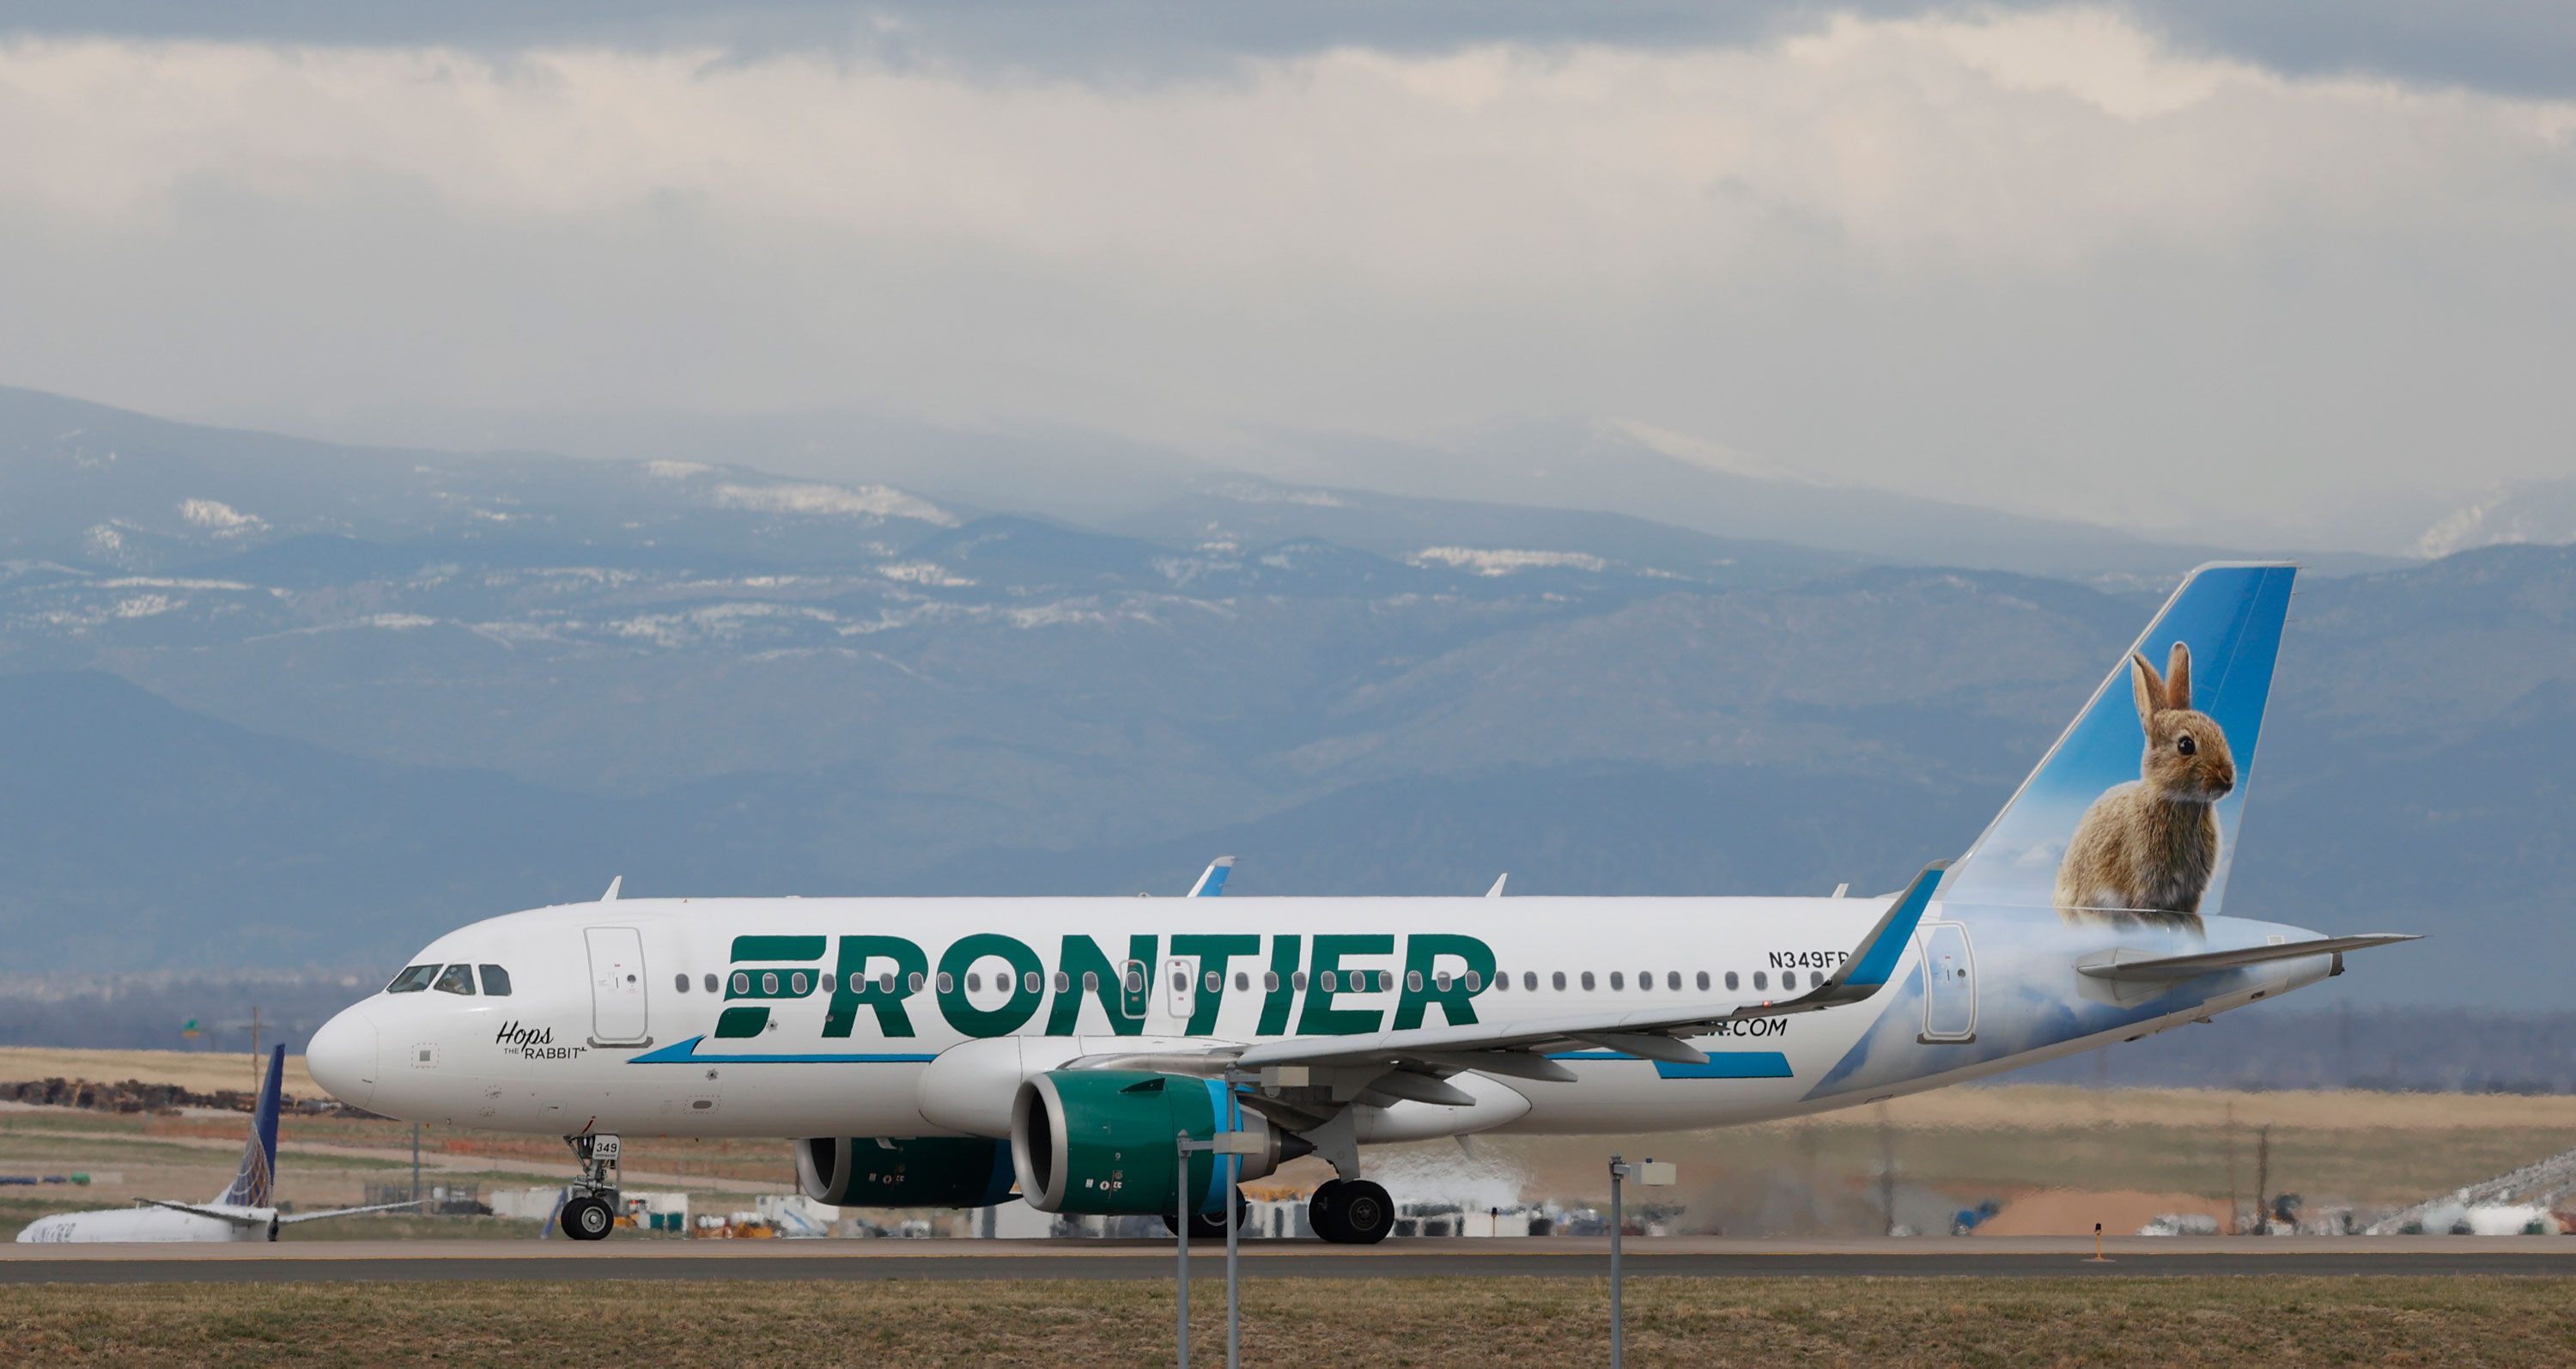 A Frontier Airlines jetliner taxis to a runway to take off from Denver International Airport on April 23, in Denver.